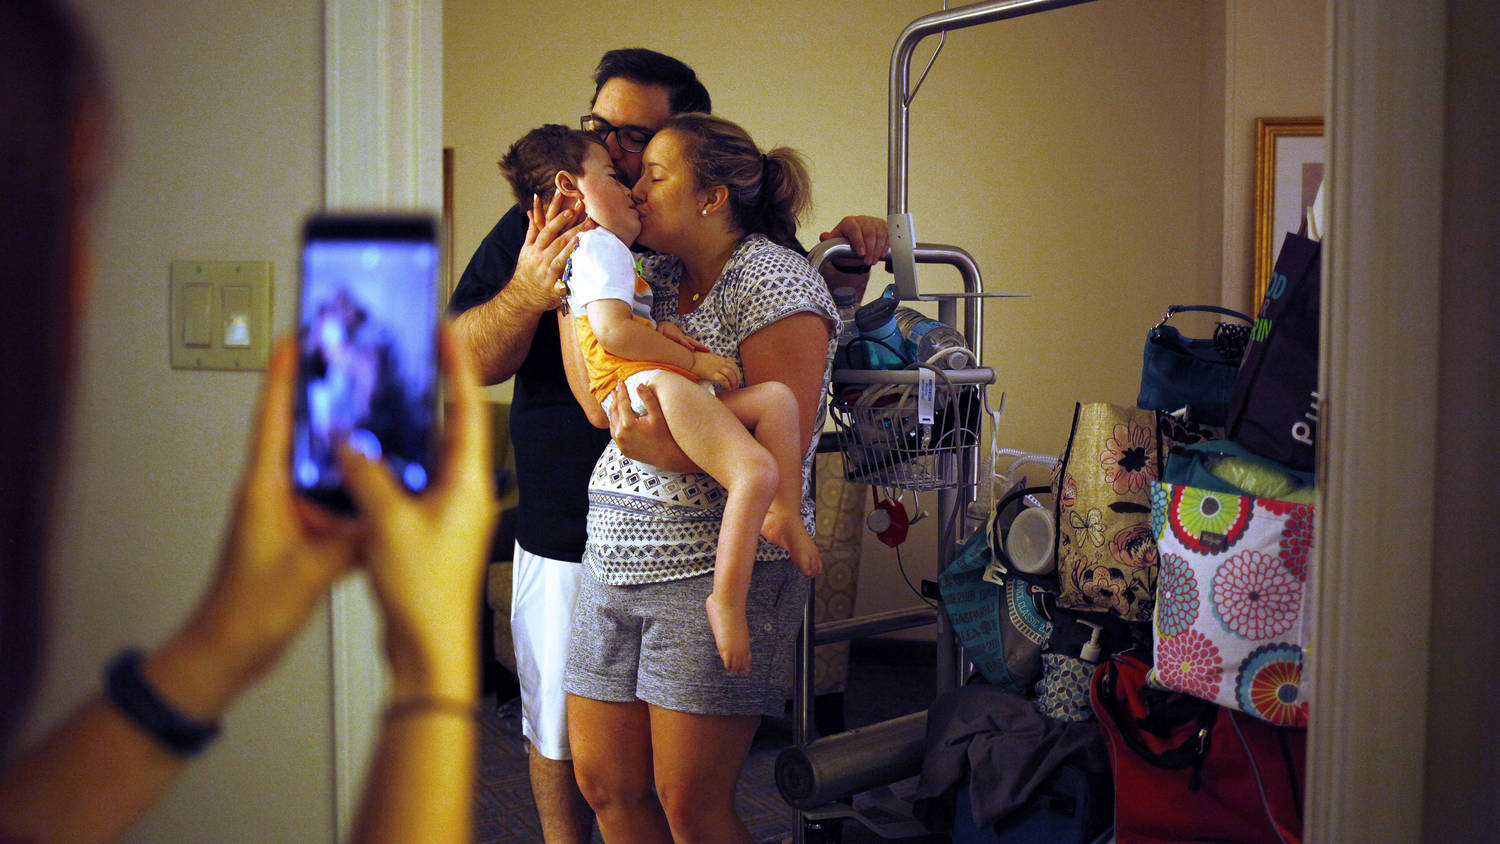 In the foreground, someone using a cellphone to take a picture of the couple standing holding their baby in a hospital room.